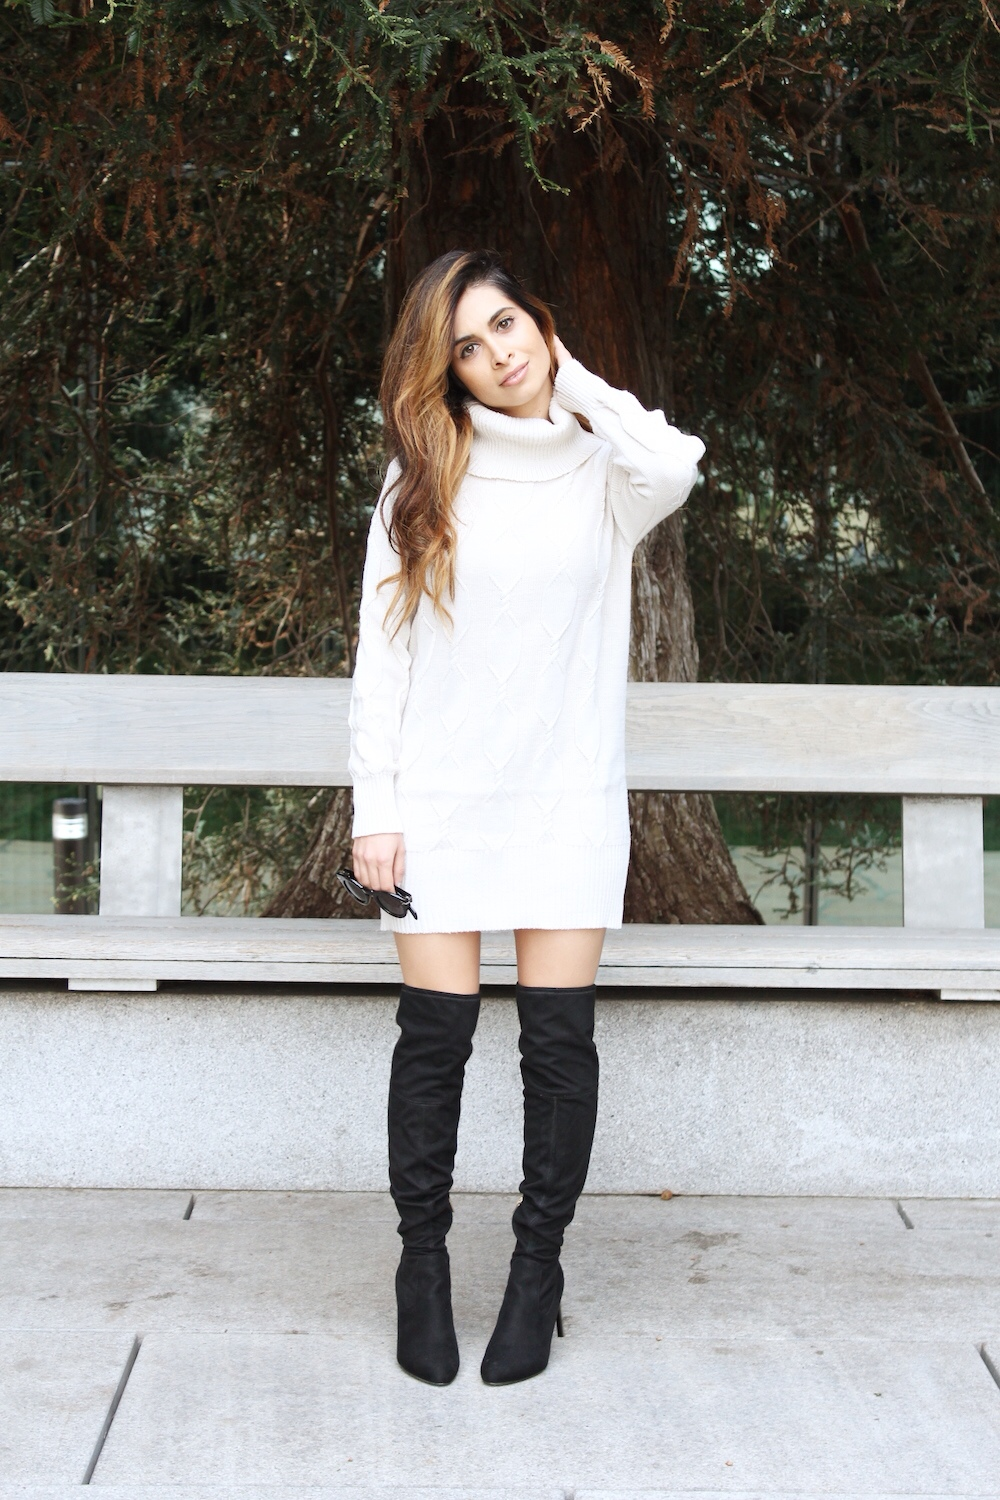 cozy sweater_savvy javvy_fashion blogger_white dress_sweater dress_balayage hair_celine sunglasses_OTK boots_over the knee high boots_ivanka trump